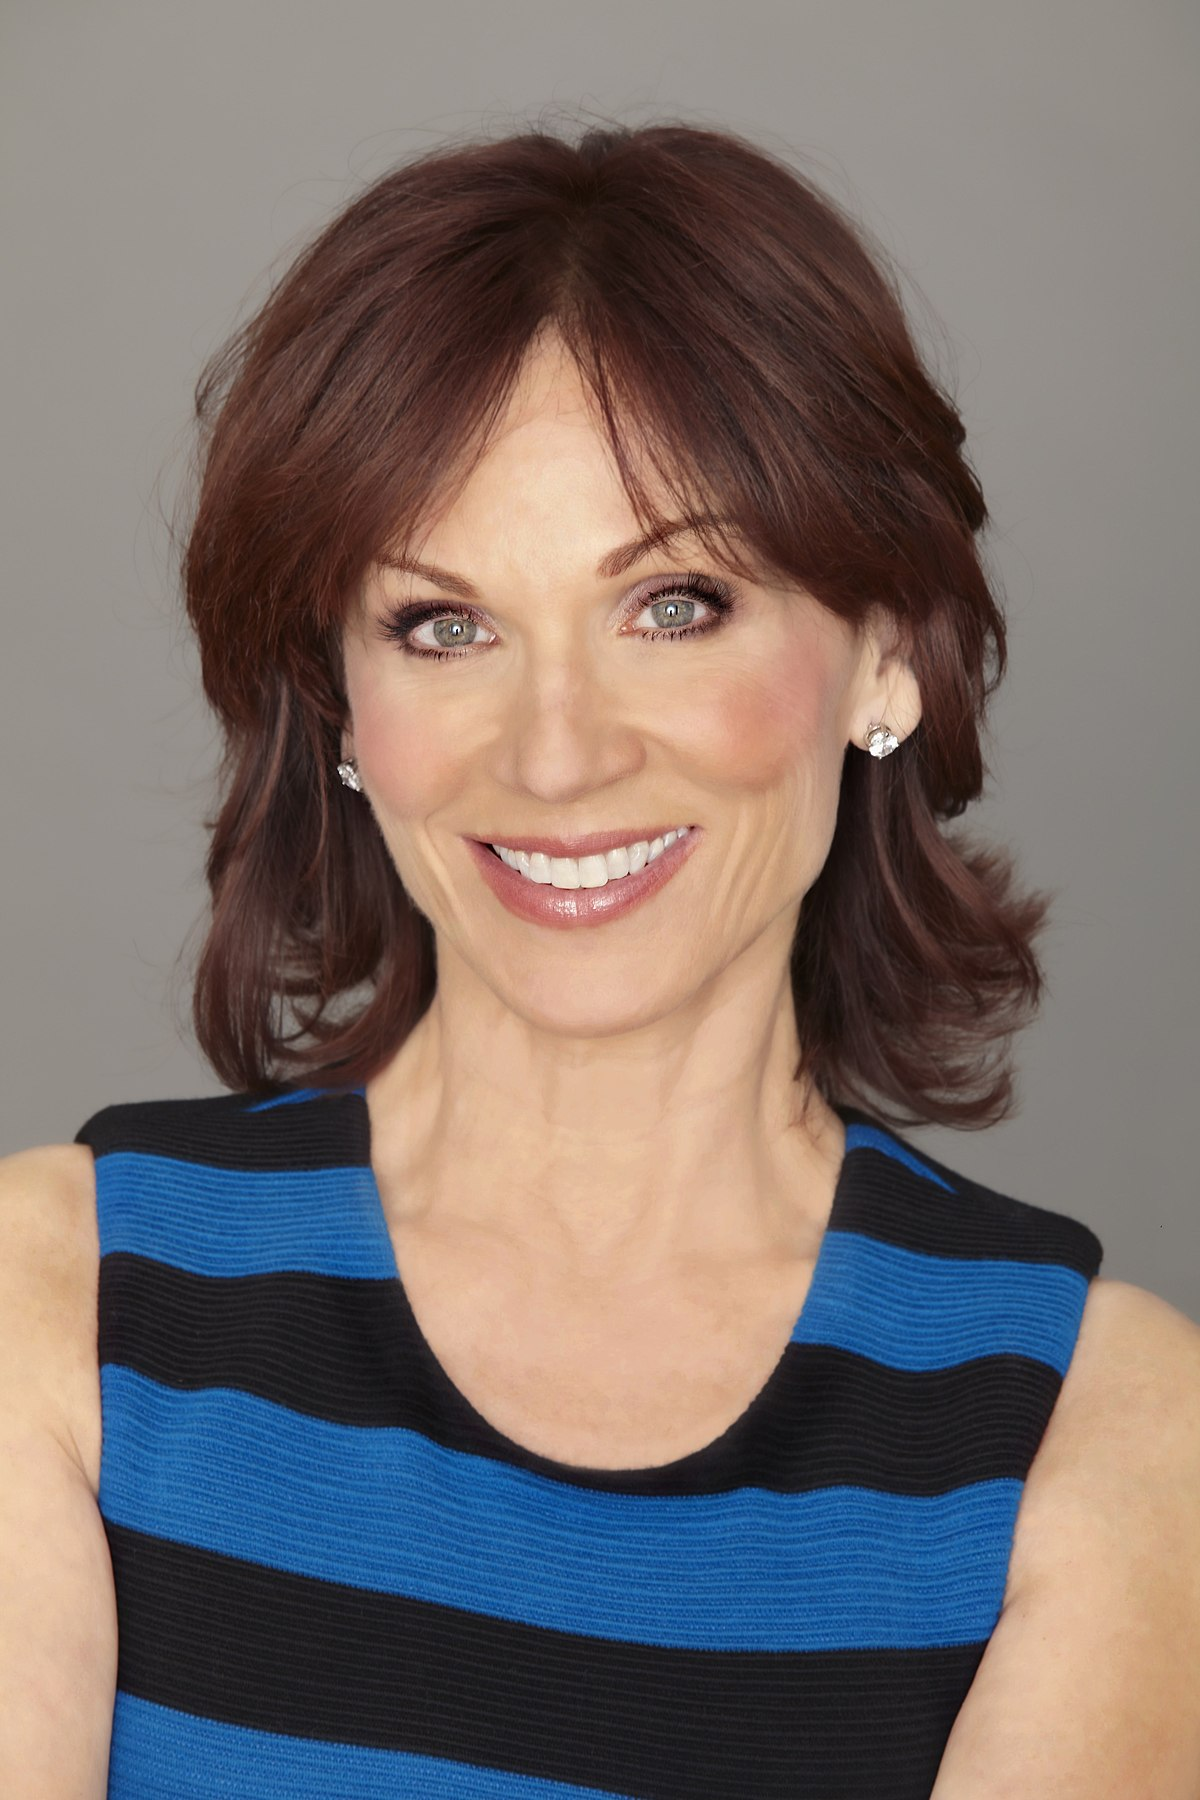 The 69-year old daughter of father Joseph Henner and mother Loretta Callis Marilu Henner in 2021 photo. Marilu Henner earned a  million dollar salary - leaving the net worth at 8 million in 2021